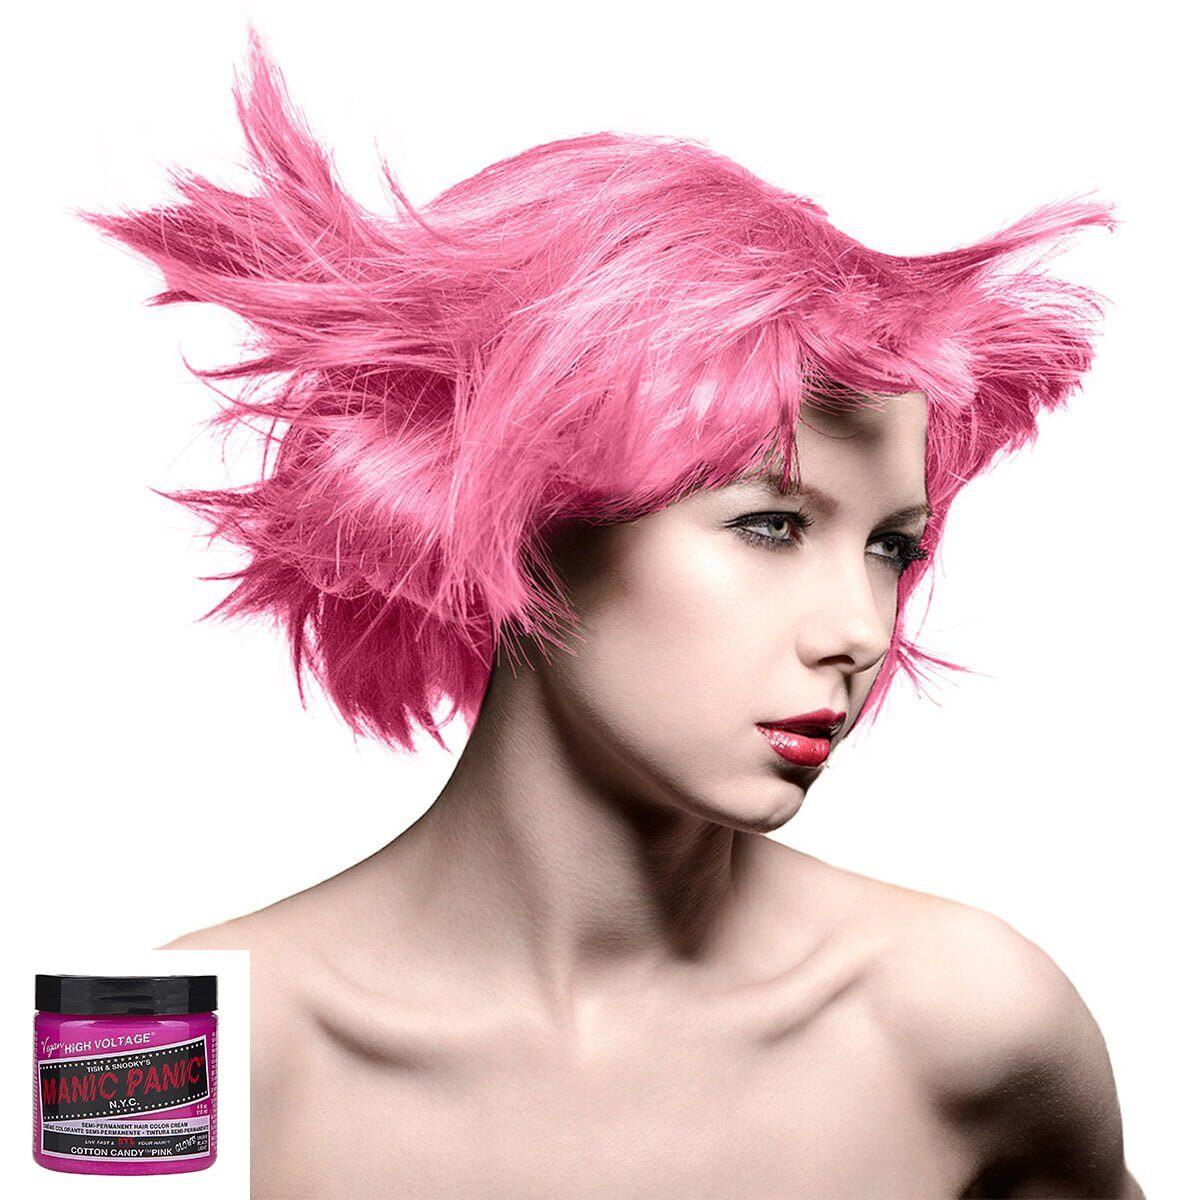 manic panic high voltage rosa uv hårfarge 118 ml cotton candy pink model 54501